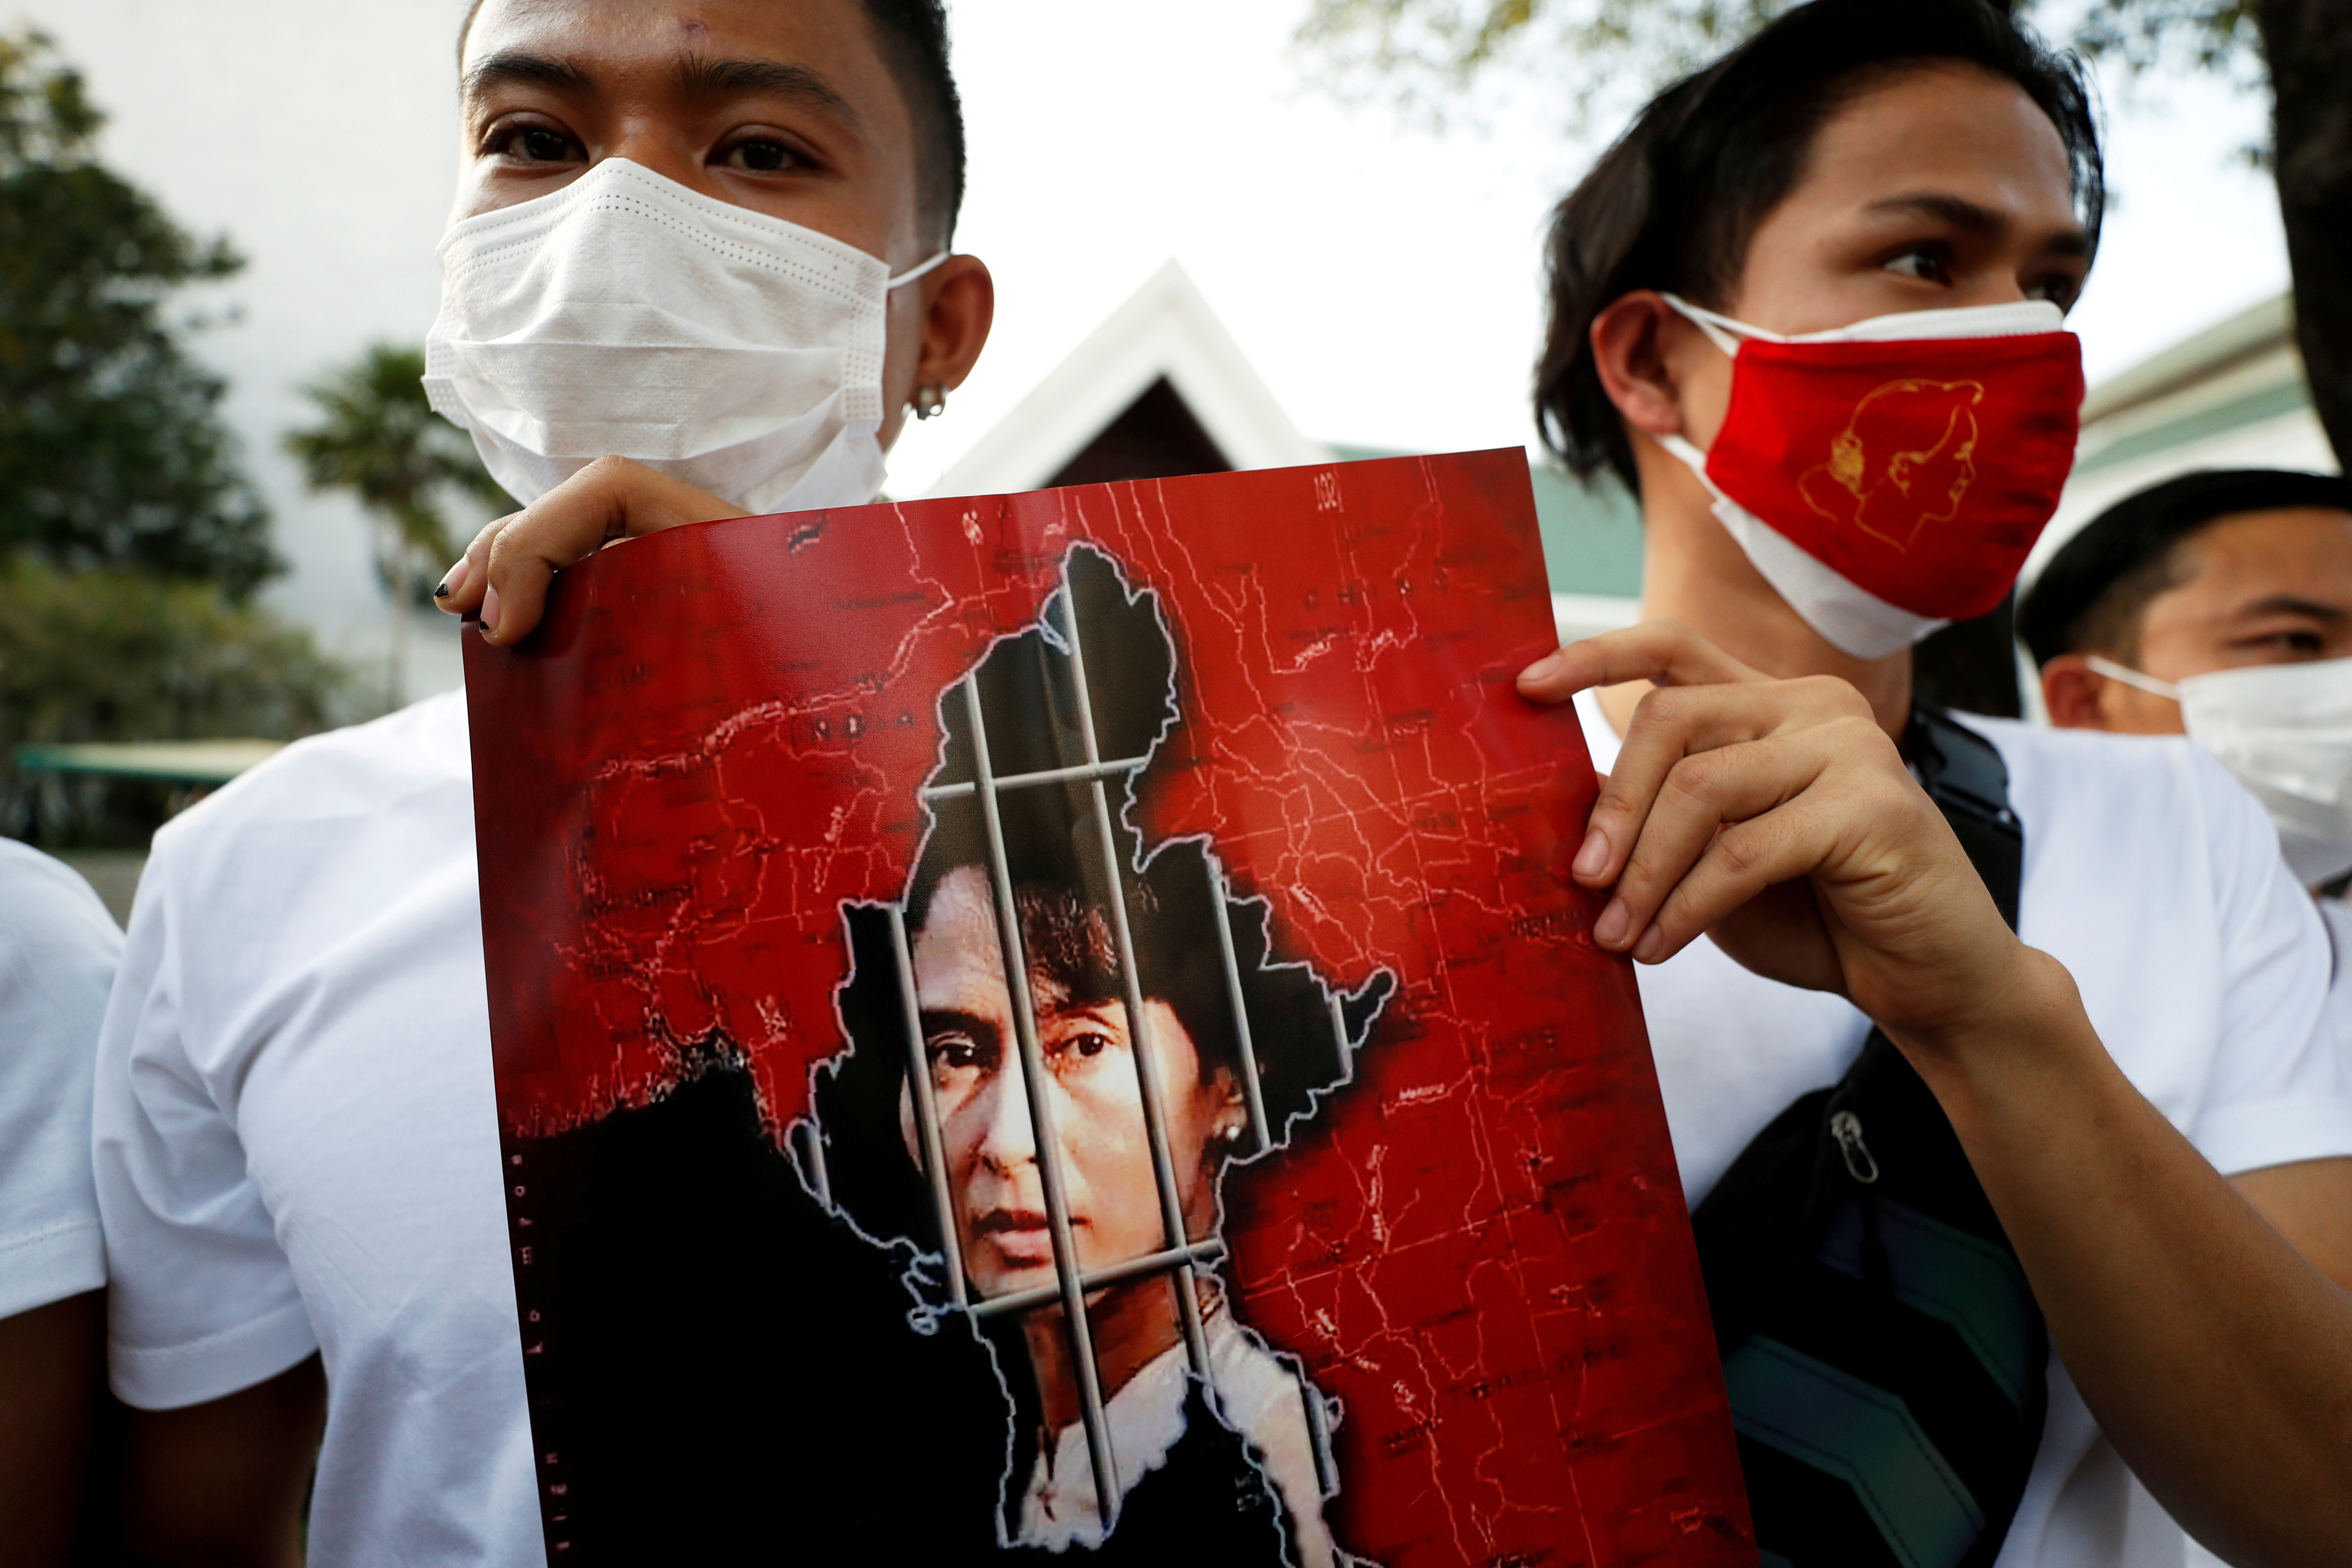 Myanmar citizens hold up a picture of leader Aung San Suu Kyi after the military seized power in a coup in Myanmar, outside United Nations venue in Bangkok, Thailand February 2, 2021. REUTERS/Jorge Silva/File Photo